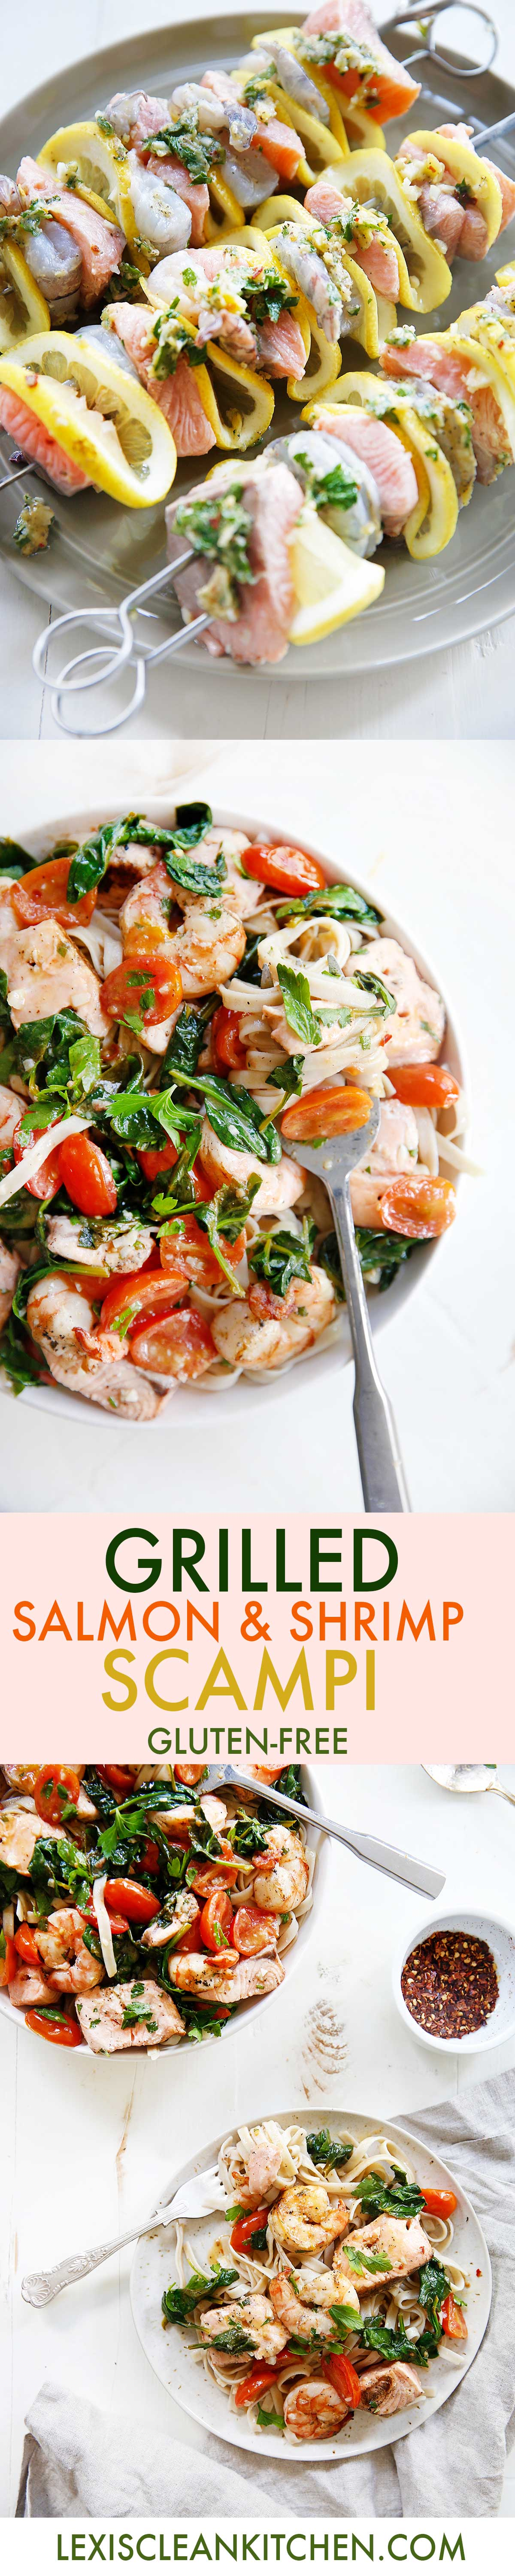 Grilled Shrimp Salmon Scampi {Gluten-free} | Lexi's Clean Kitchen